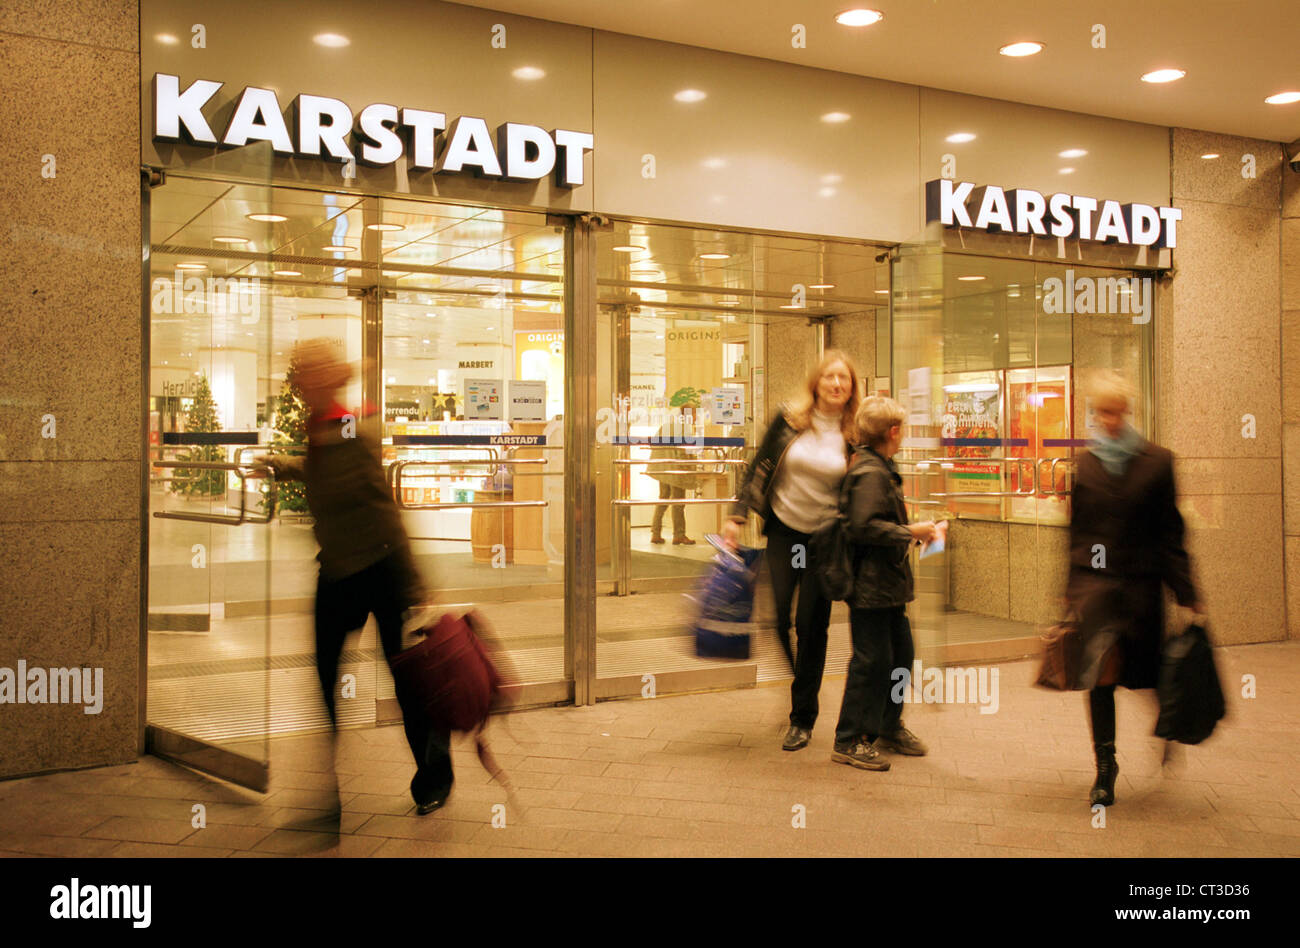 Karstadt to close six stores as a new CEO is named recommend dress for winter in 2019